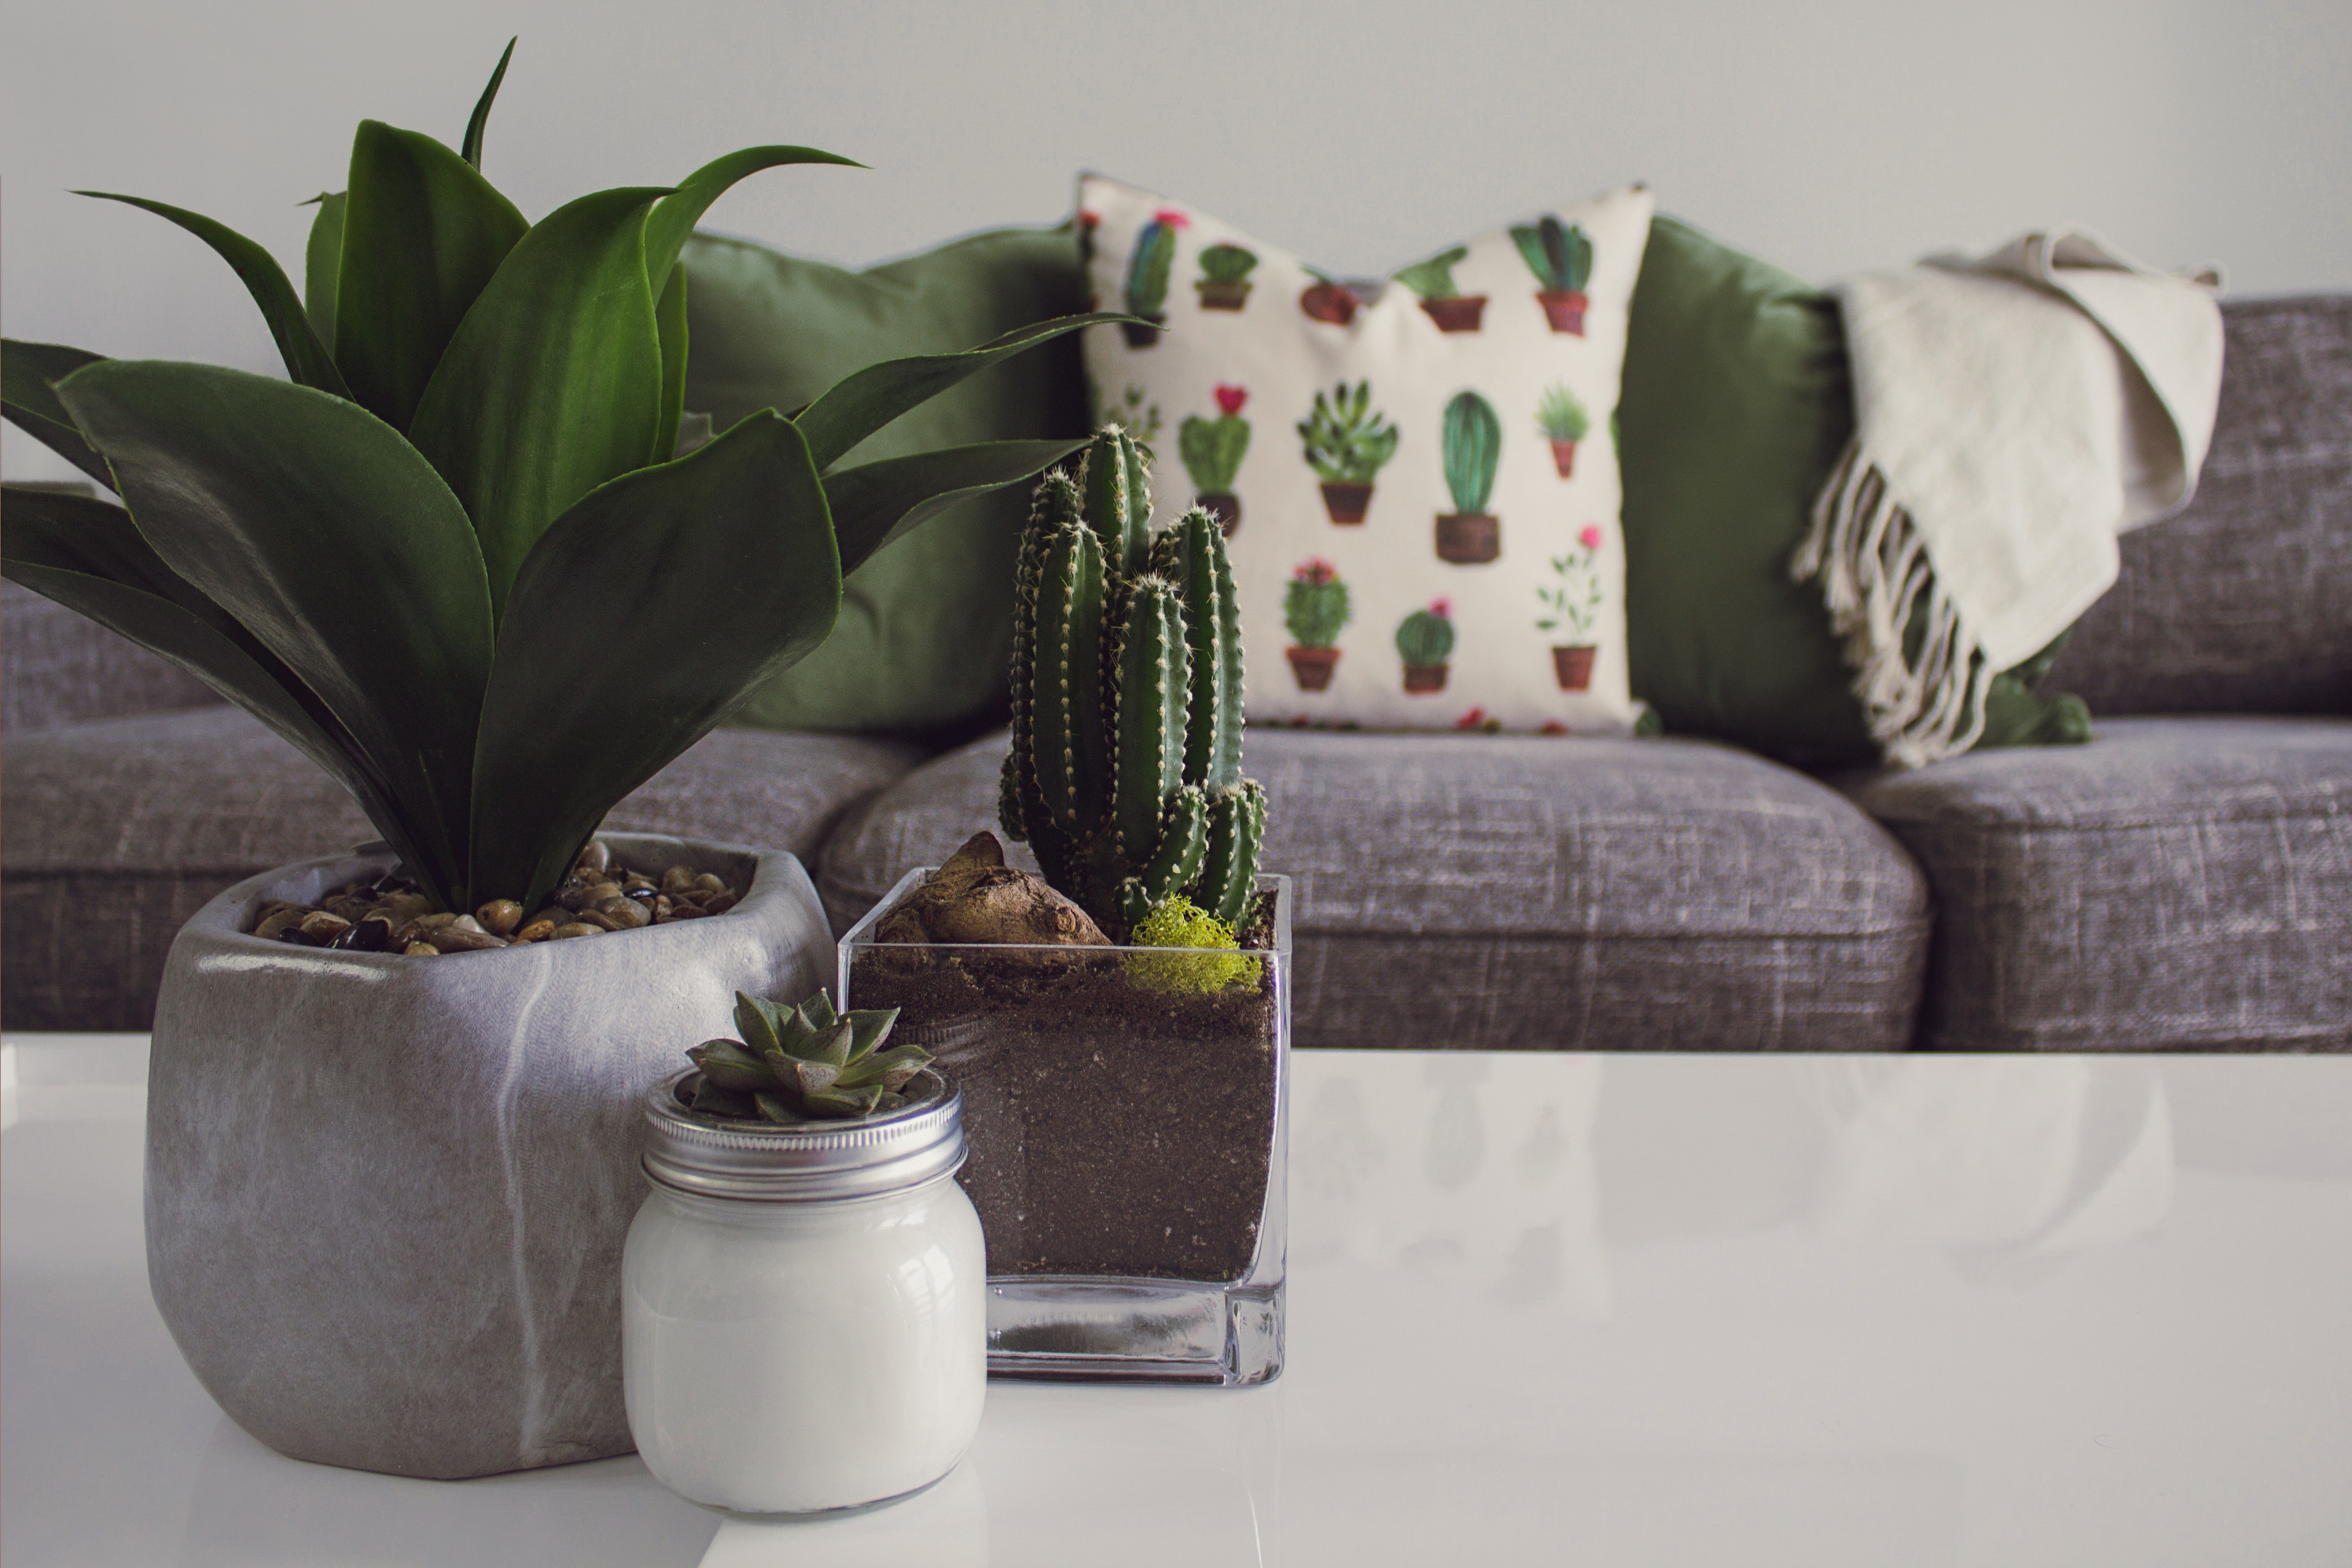 A neat room is pictured; a gray couch with a cactus print pillow in the background, and a cactus and succulents on the table in the foreground